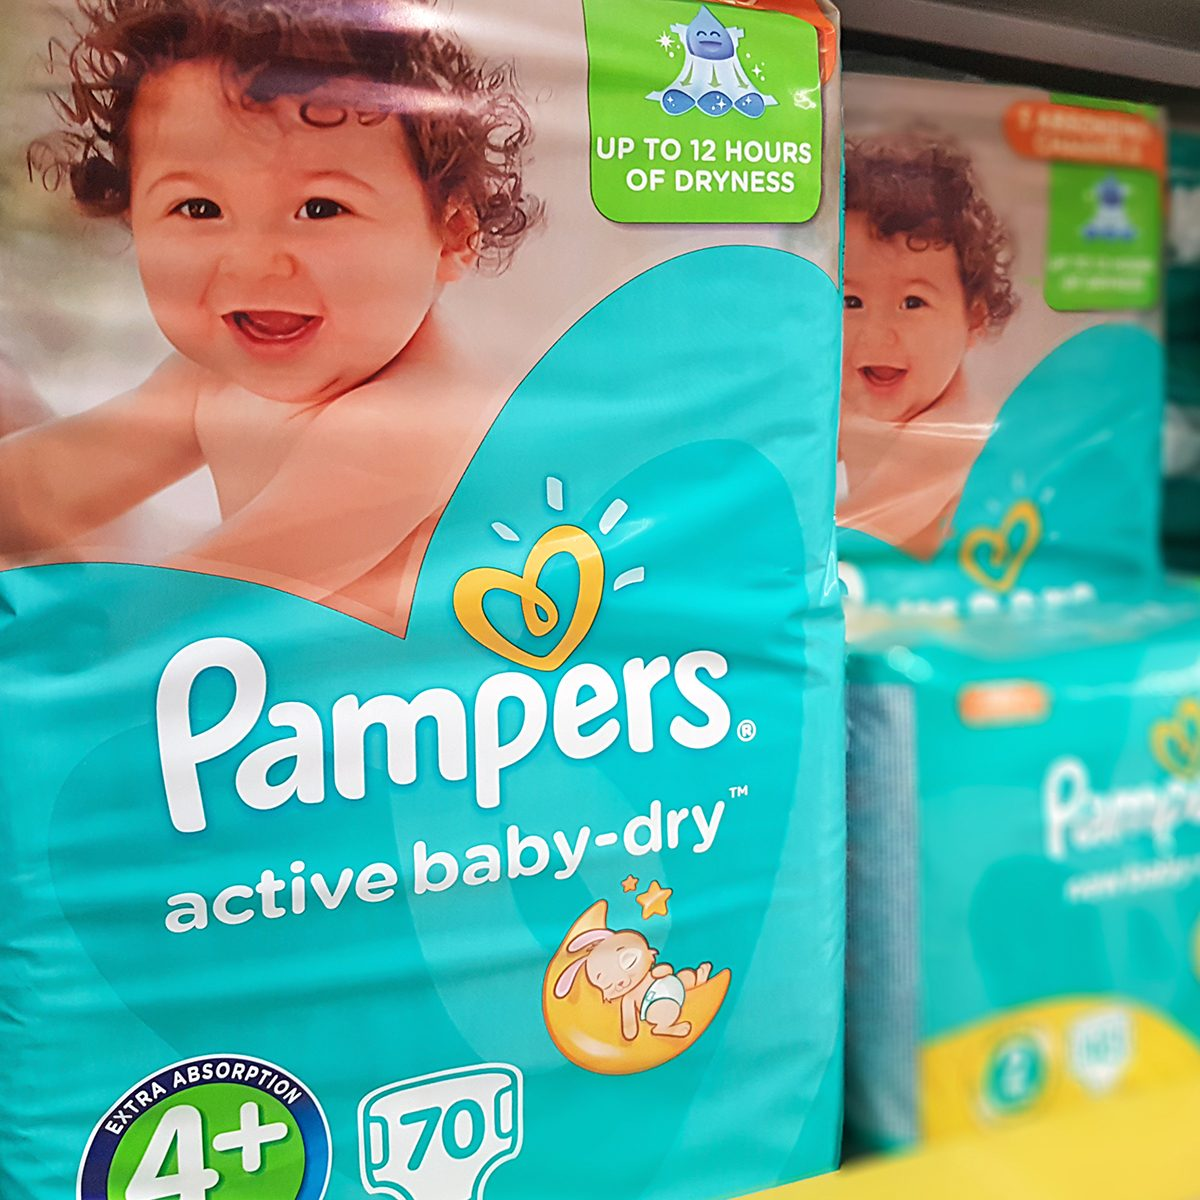 Various types of Pampers active baby-dry by Procter & Gamble Co. and offered for sale in Tesco Hypermarket.